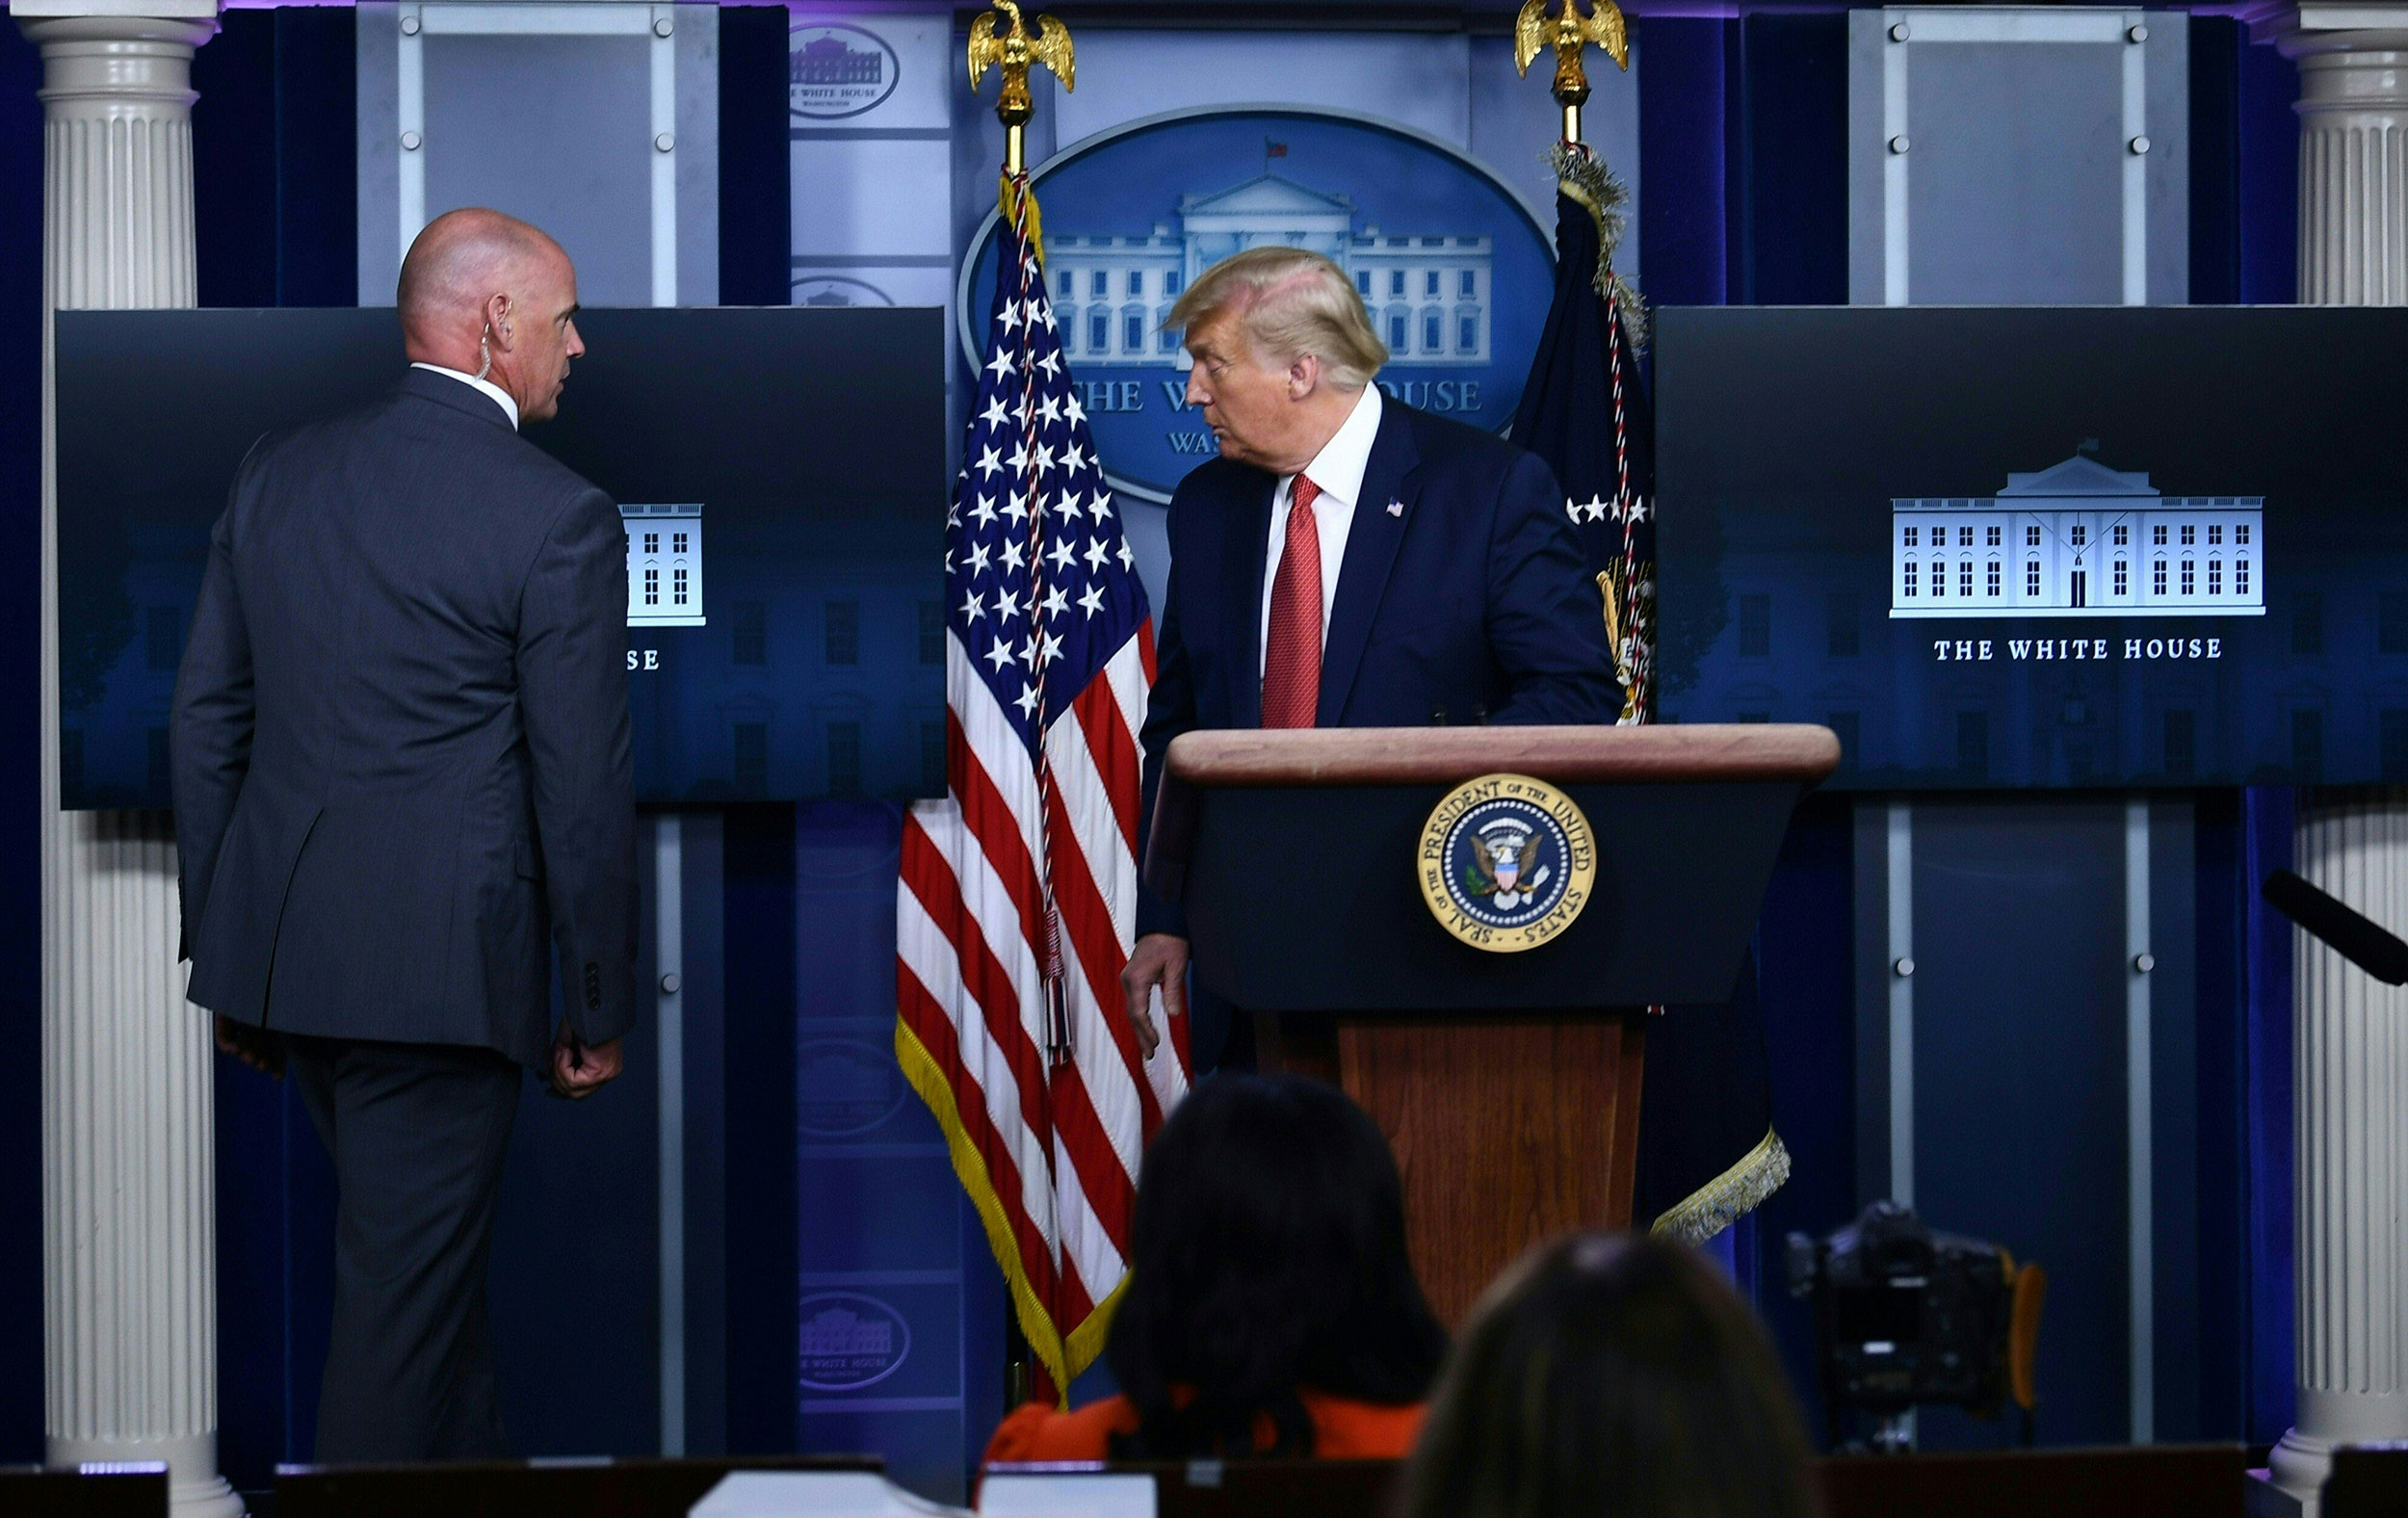 Trump briefly leaves press briefing after shooting near the White House